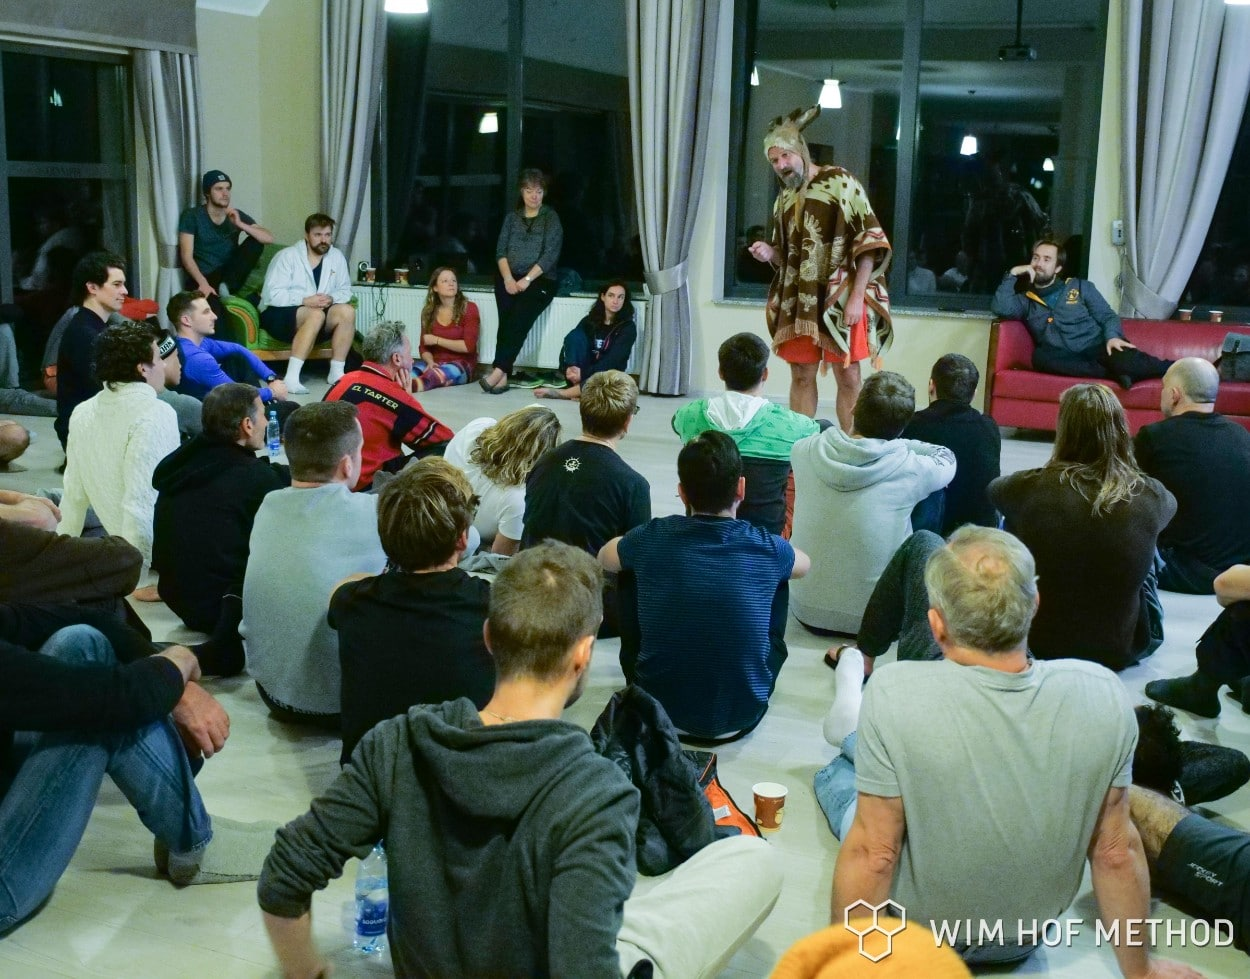 Wim Hof teaching in crazy outfit